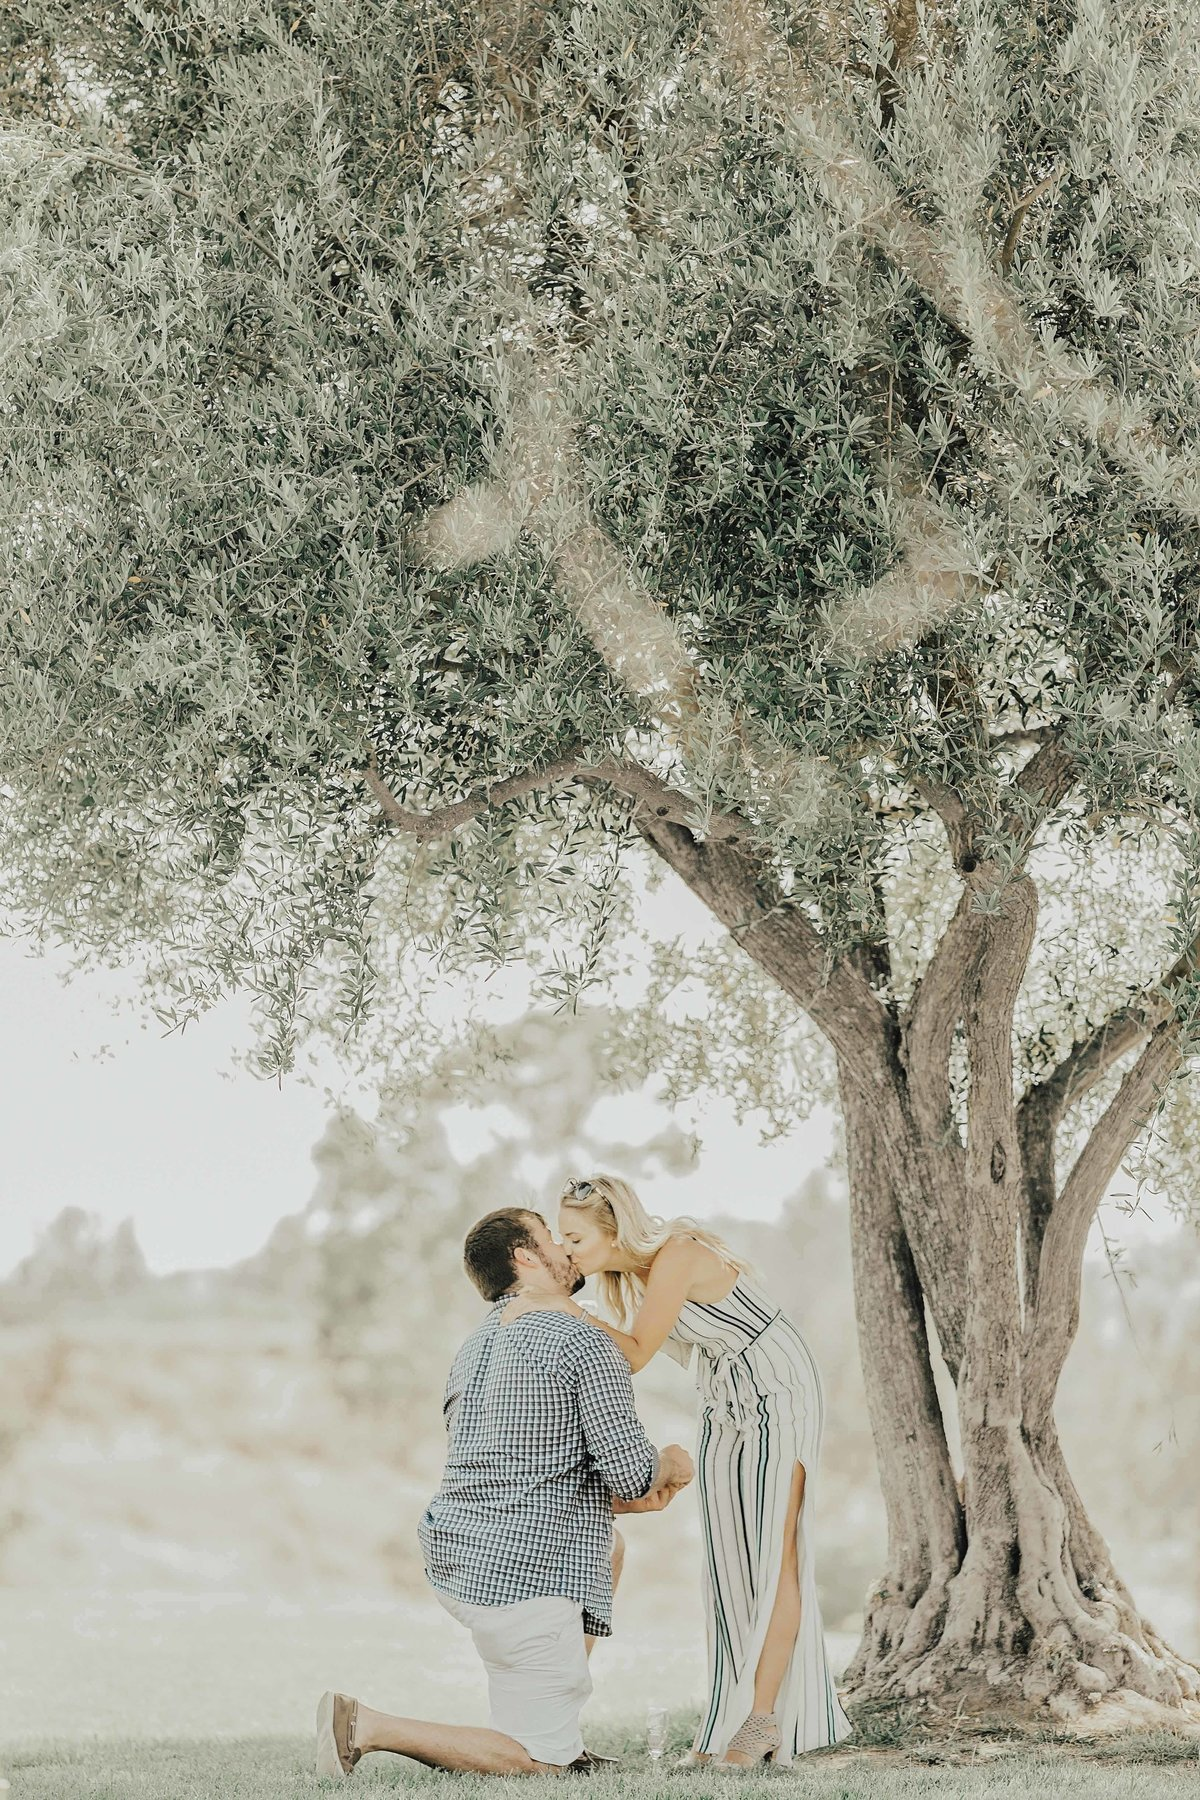 Babsie-Ly-Photography-Fine-Art-Film-Surprise-Proposal-Photographer-Temecula-Thornton-Winery-California-005